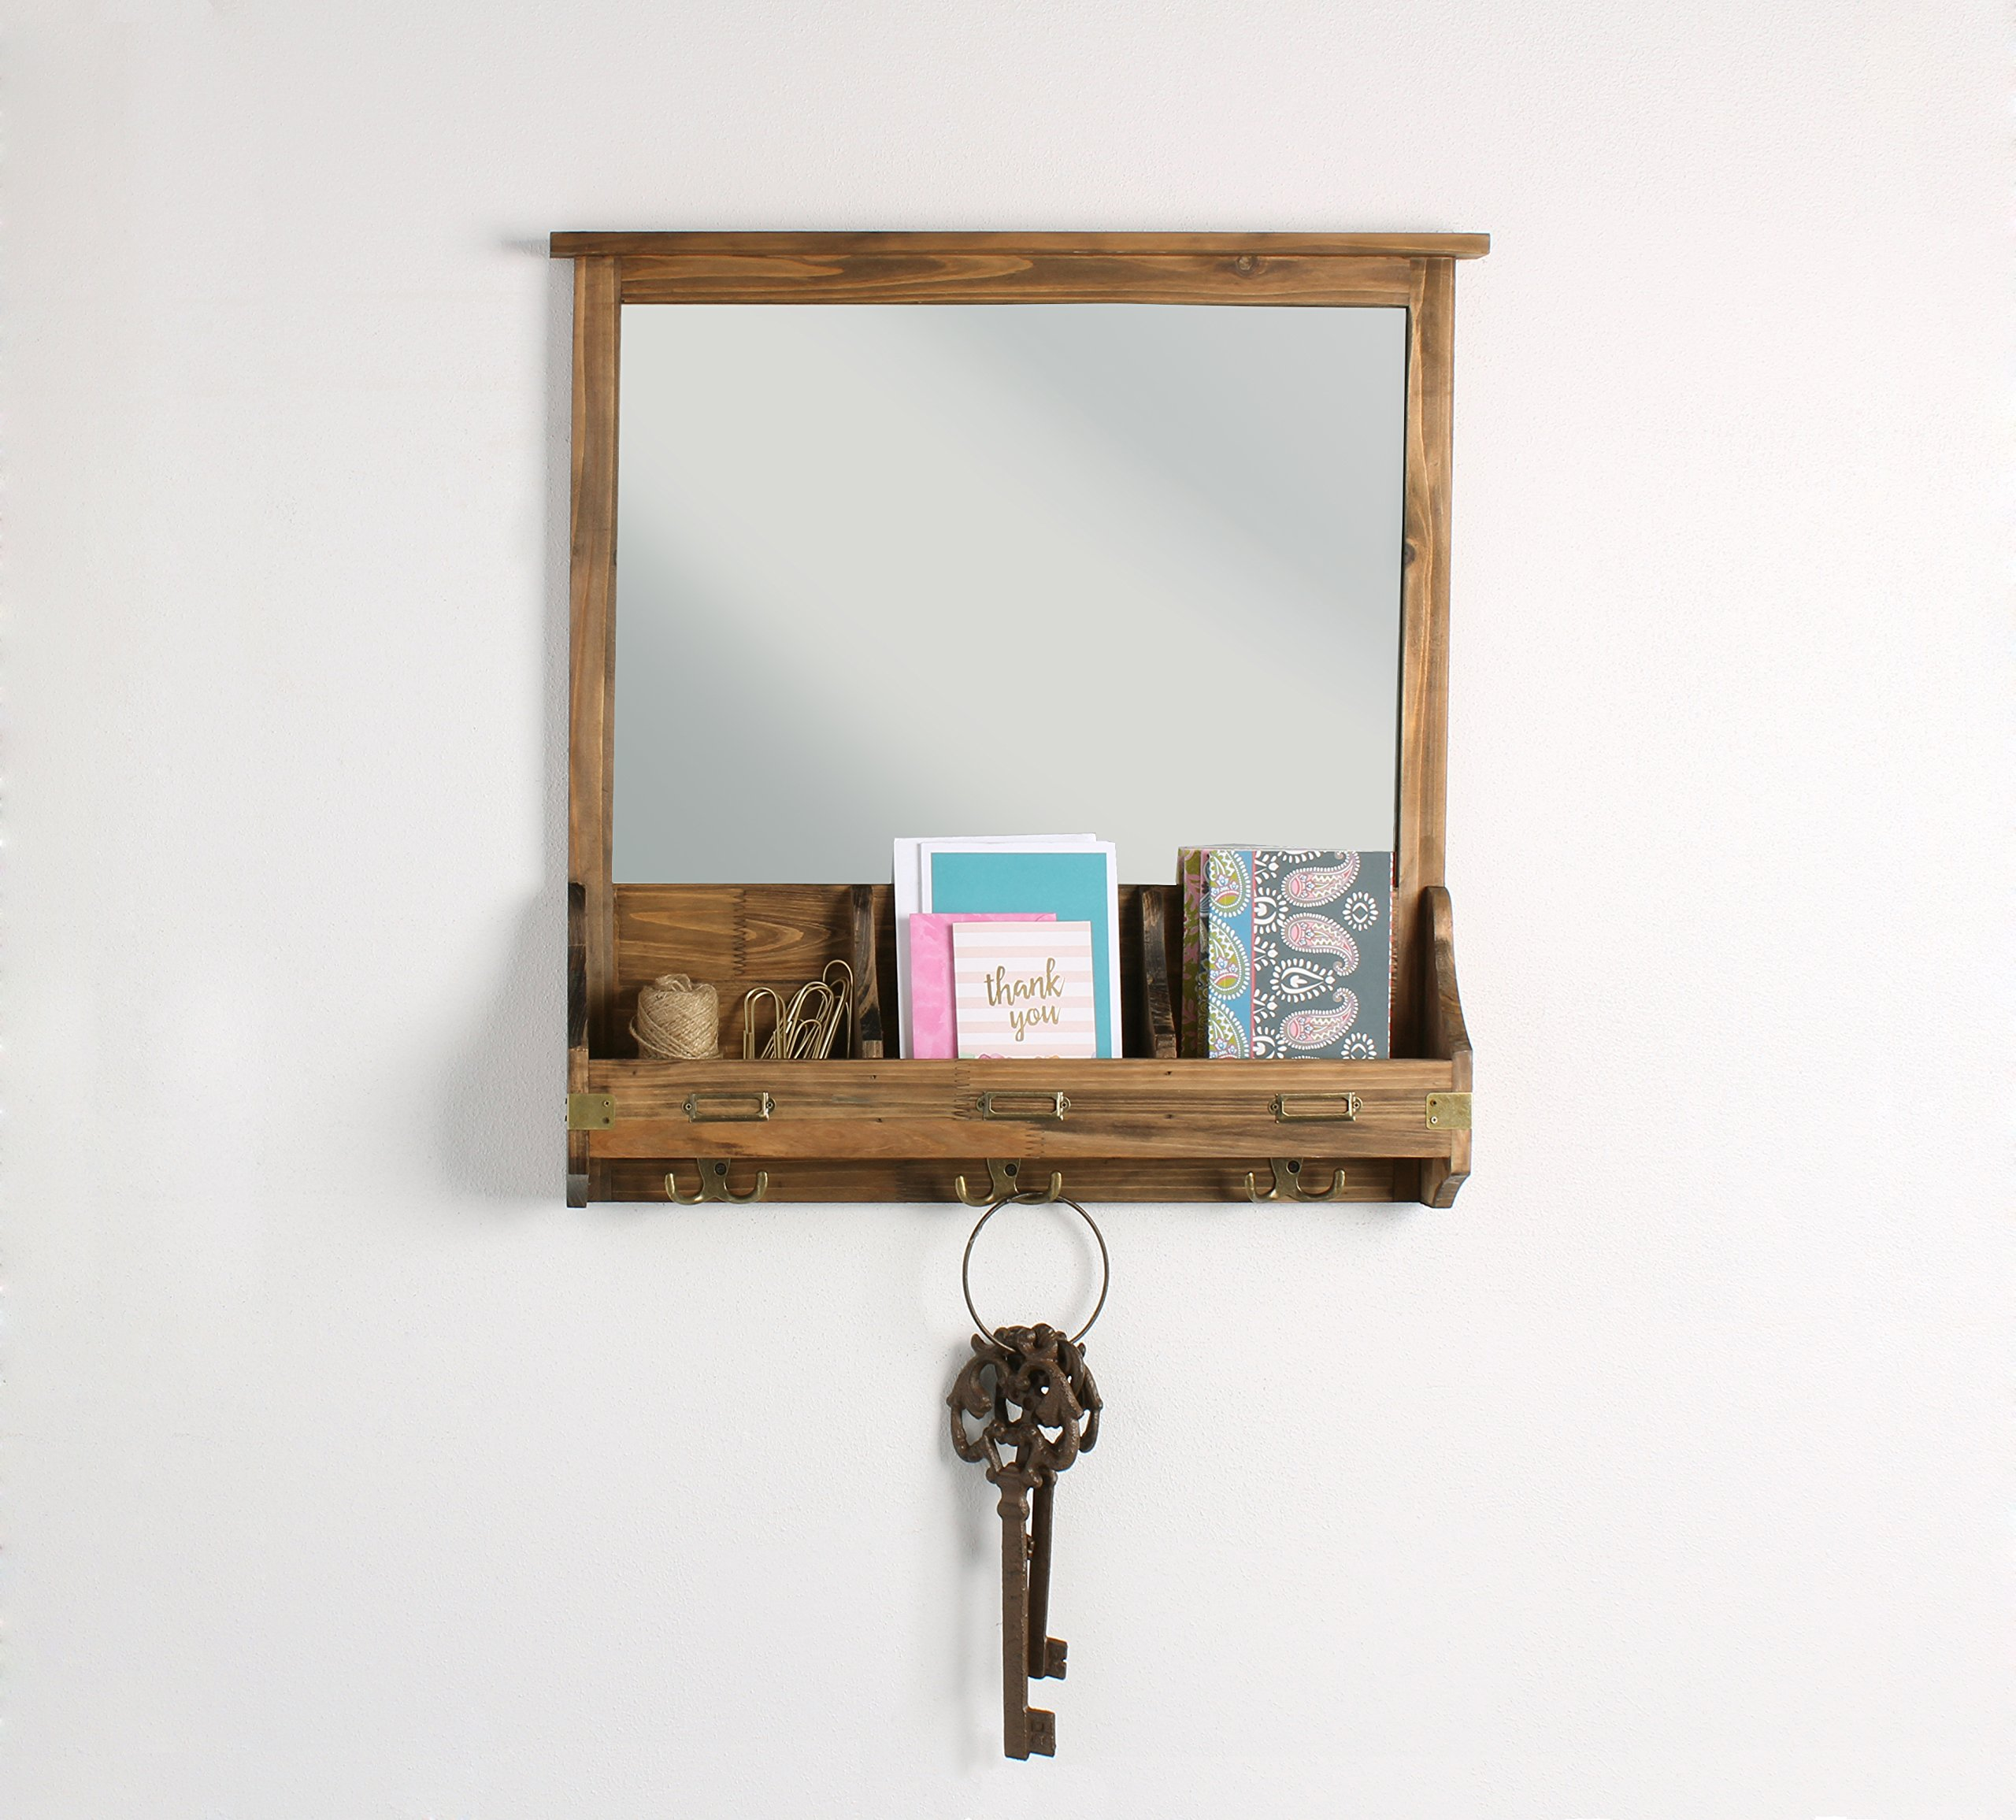 Kate and Laurel 209304 Stallard Decorative Rustic Wood Mirror Wall Home Organizer,Rustic Brown